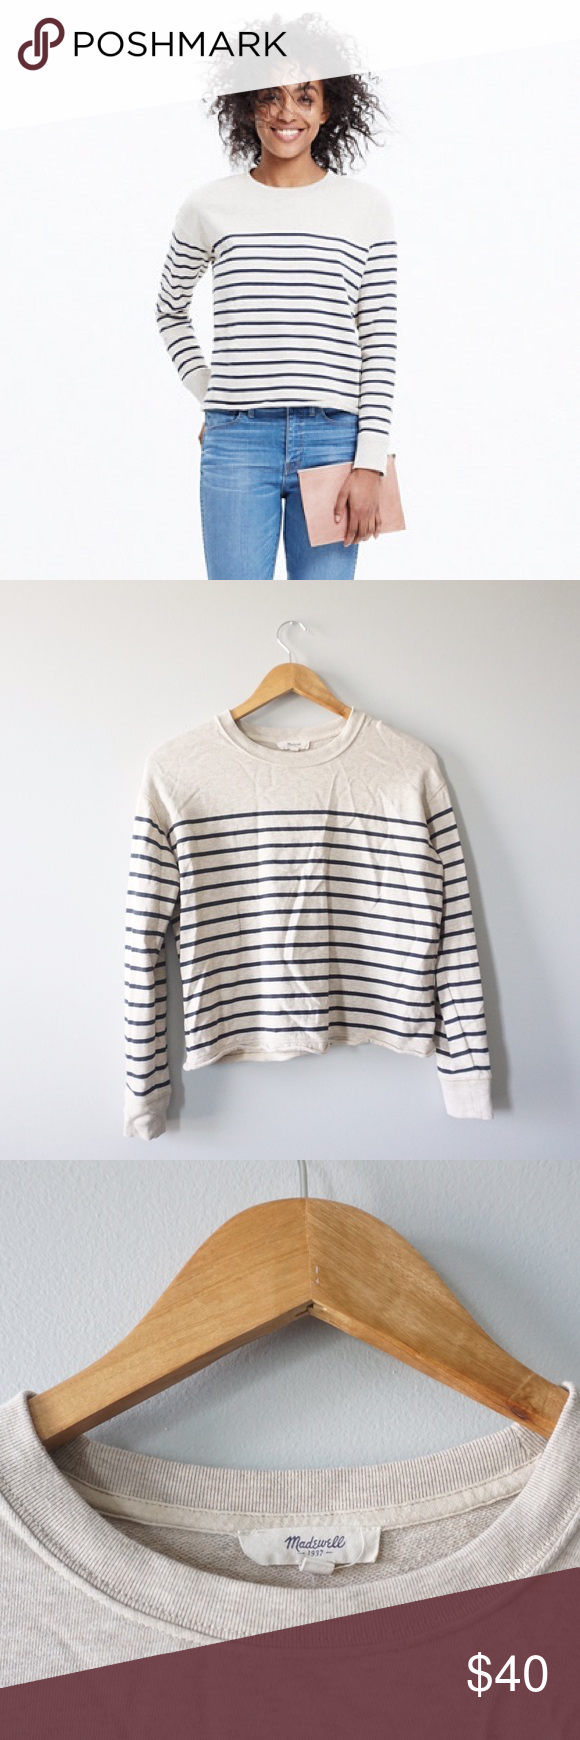 Madewell Cutoff Sweatshirt in Stripe Madewell cutoff striped pullover size extra small. Long sleeves. 100% cotton. Cropped fit. 20 inches long, bust 20 inches. True to size. No stains or holes. Madewell Tops Sweatshirts & Hoodies